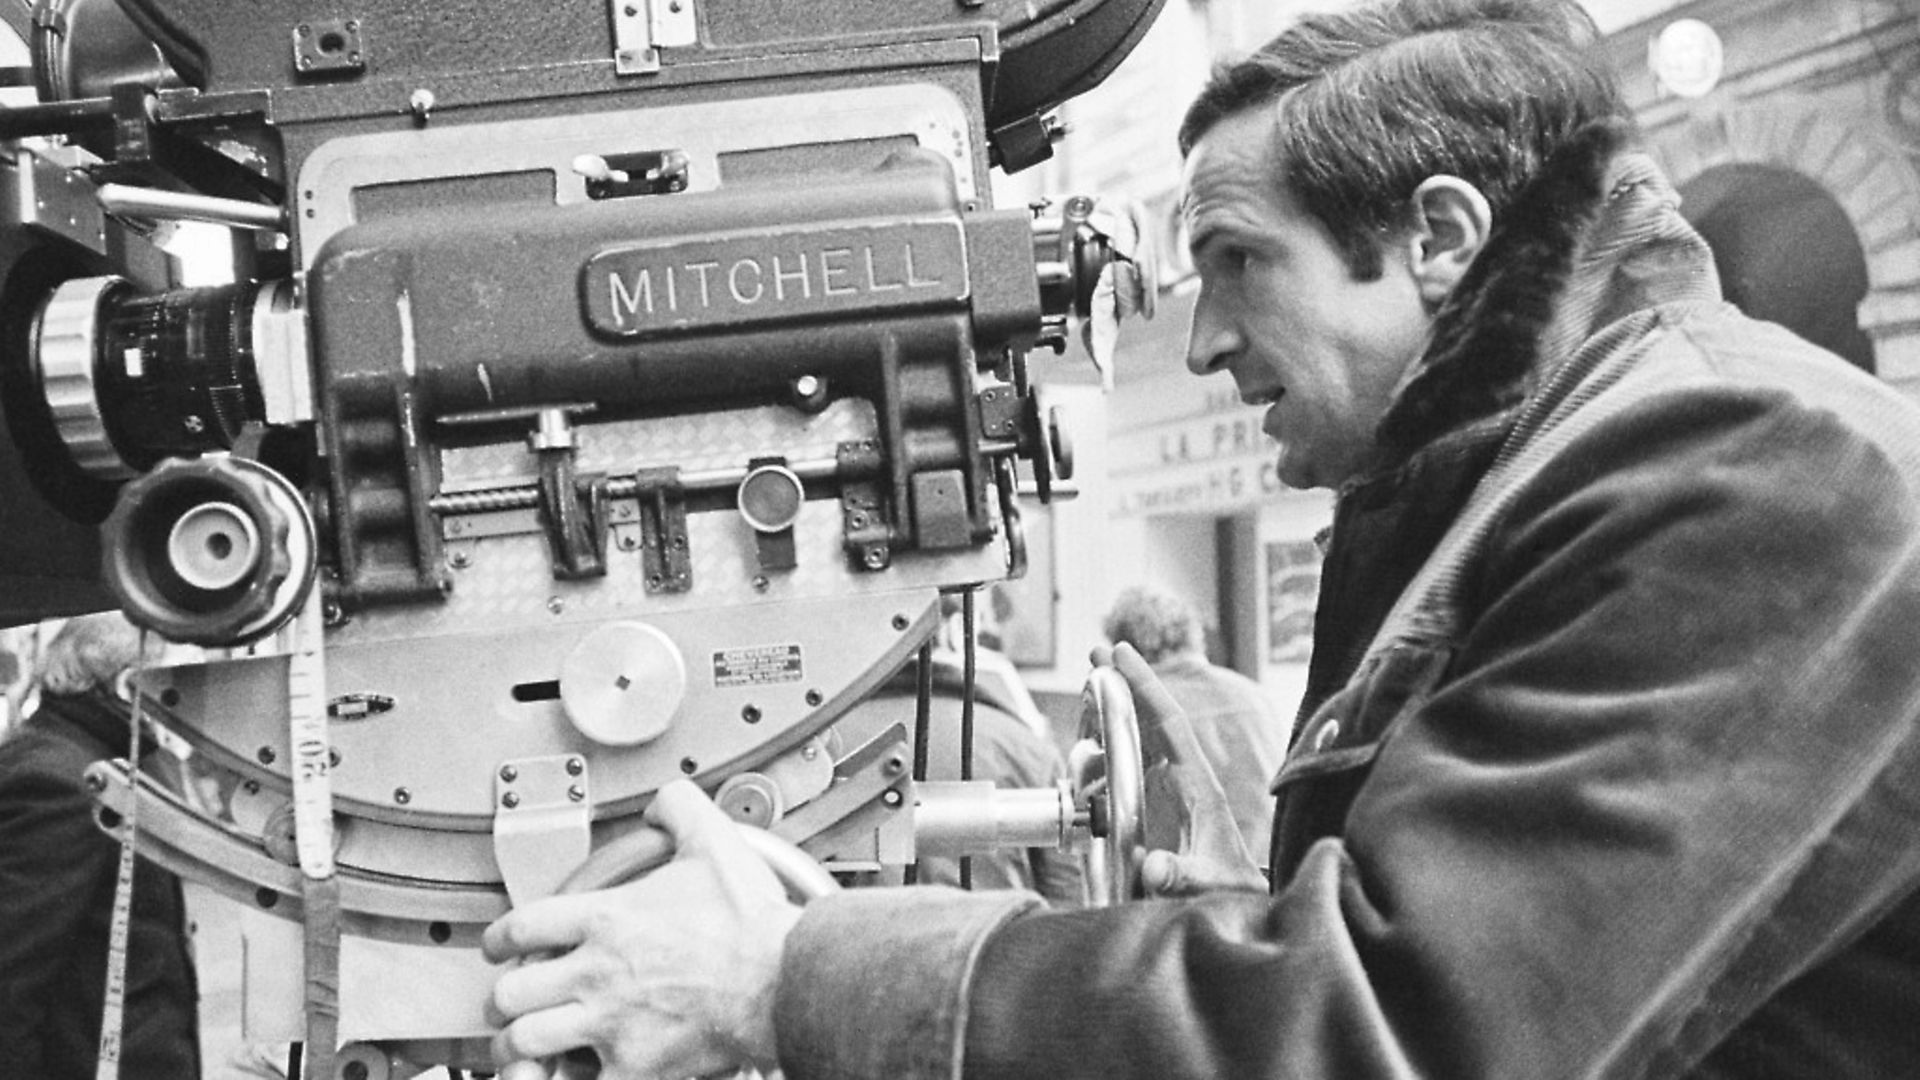 French director Francois Truffaut on the set of his 1969 film La Sirene du Mississipi (Mississippi Mermaid). (Photo by Alain Dejean/Sygma via Getty Images) - Credit: Sygma via Getty Images